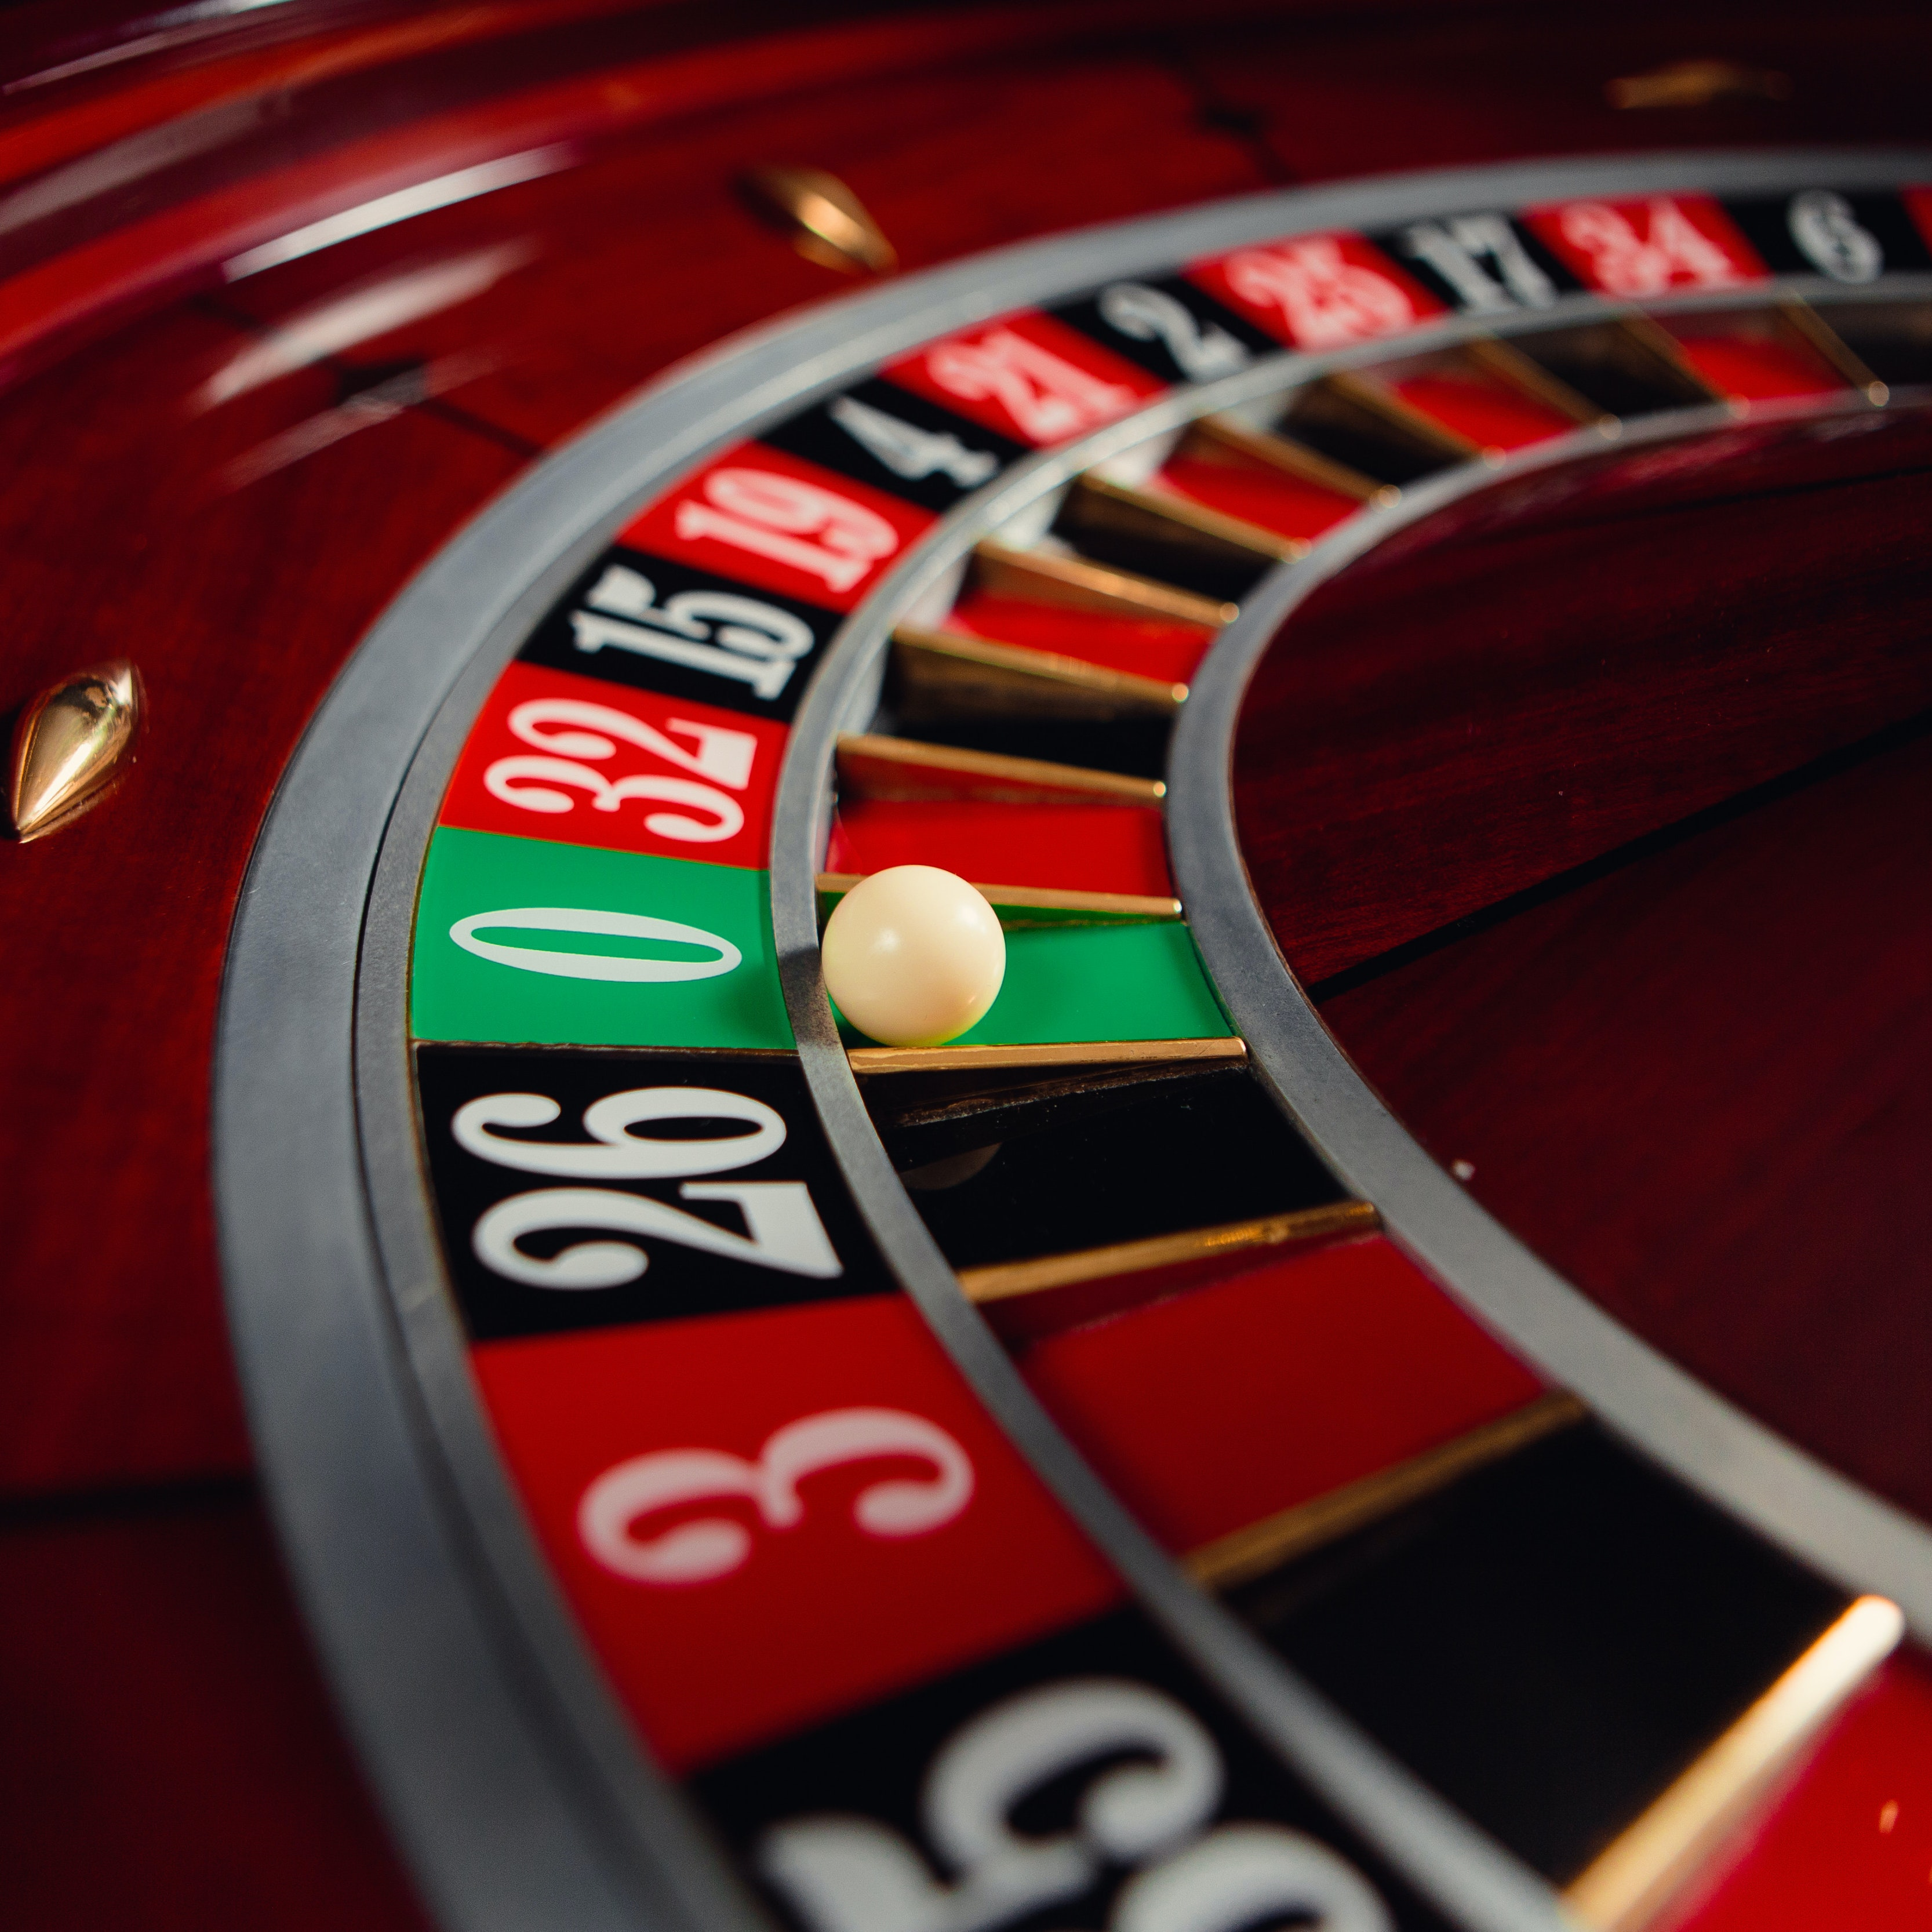 Roulette Table Layout Explained 3 Different Types Of Roulette The Twinspires Edge